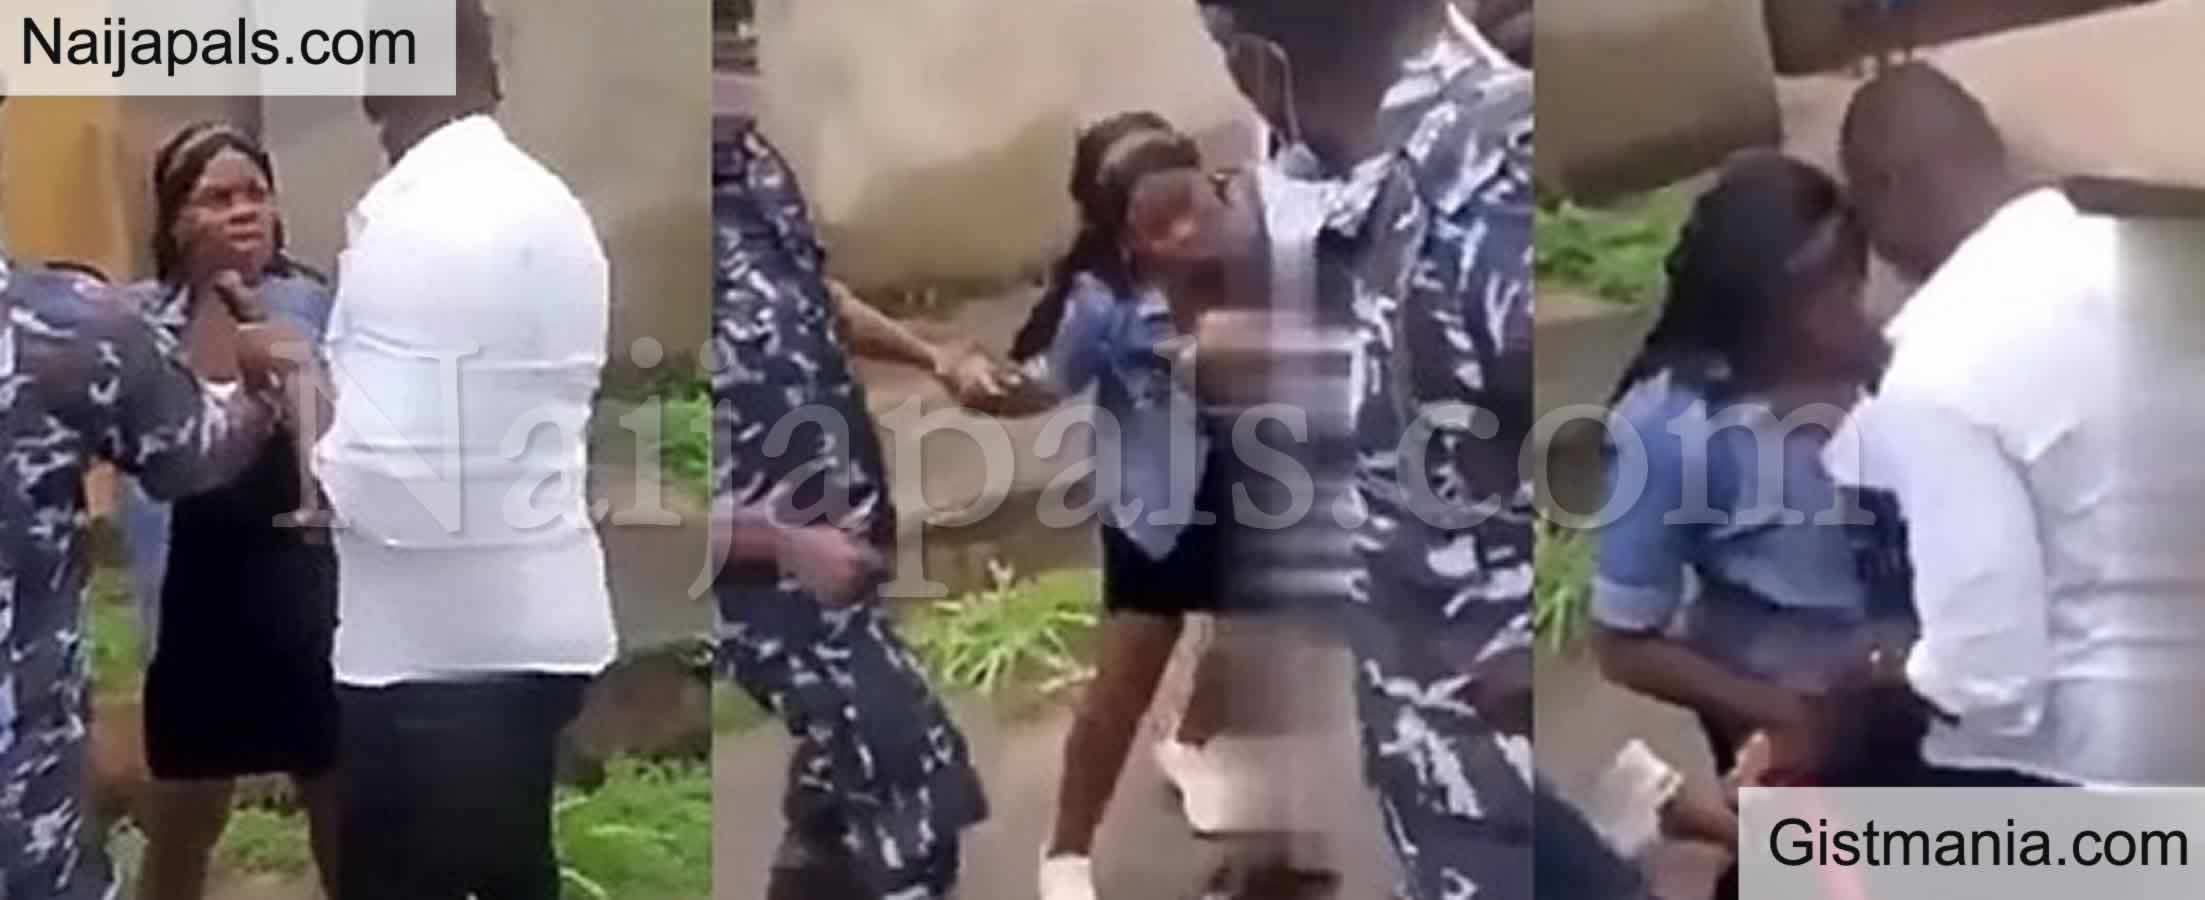 <img alt='.' class='lazyload' data-src='https://img.gistmania.com/emot/video.gif' /> Public Proposal Almost Went Wrong As <b>Man Involves SARS Officer To Propose to Girlfriend</b> (VID)